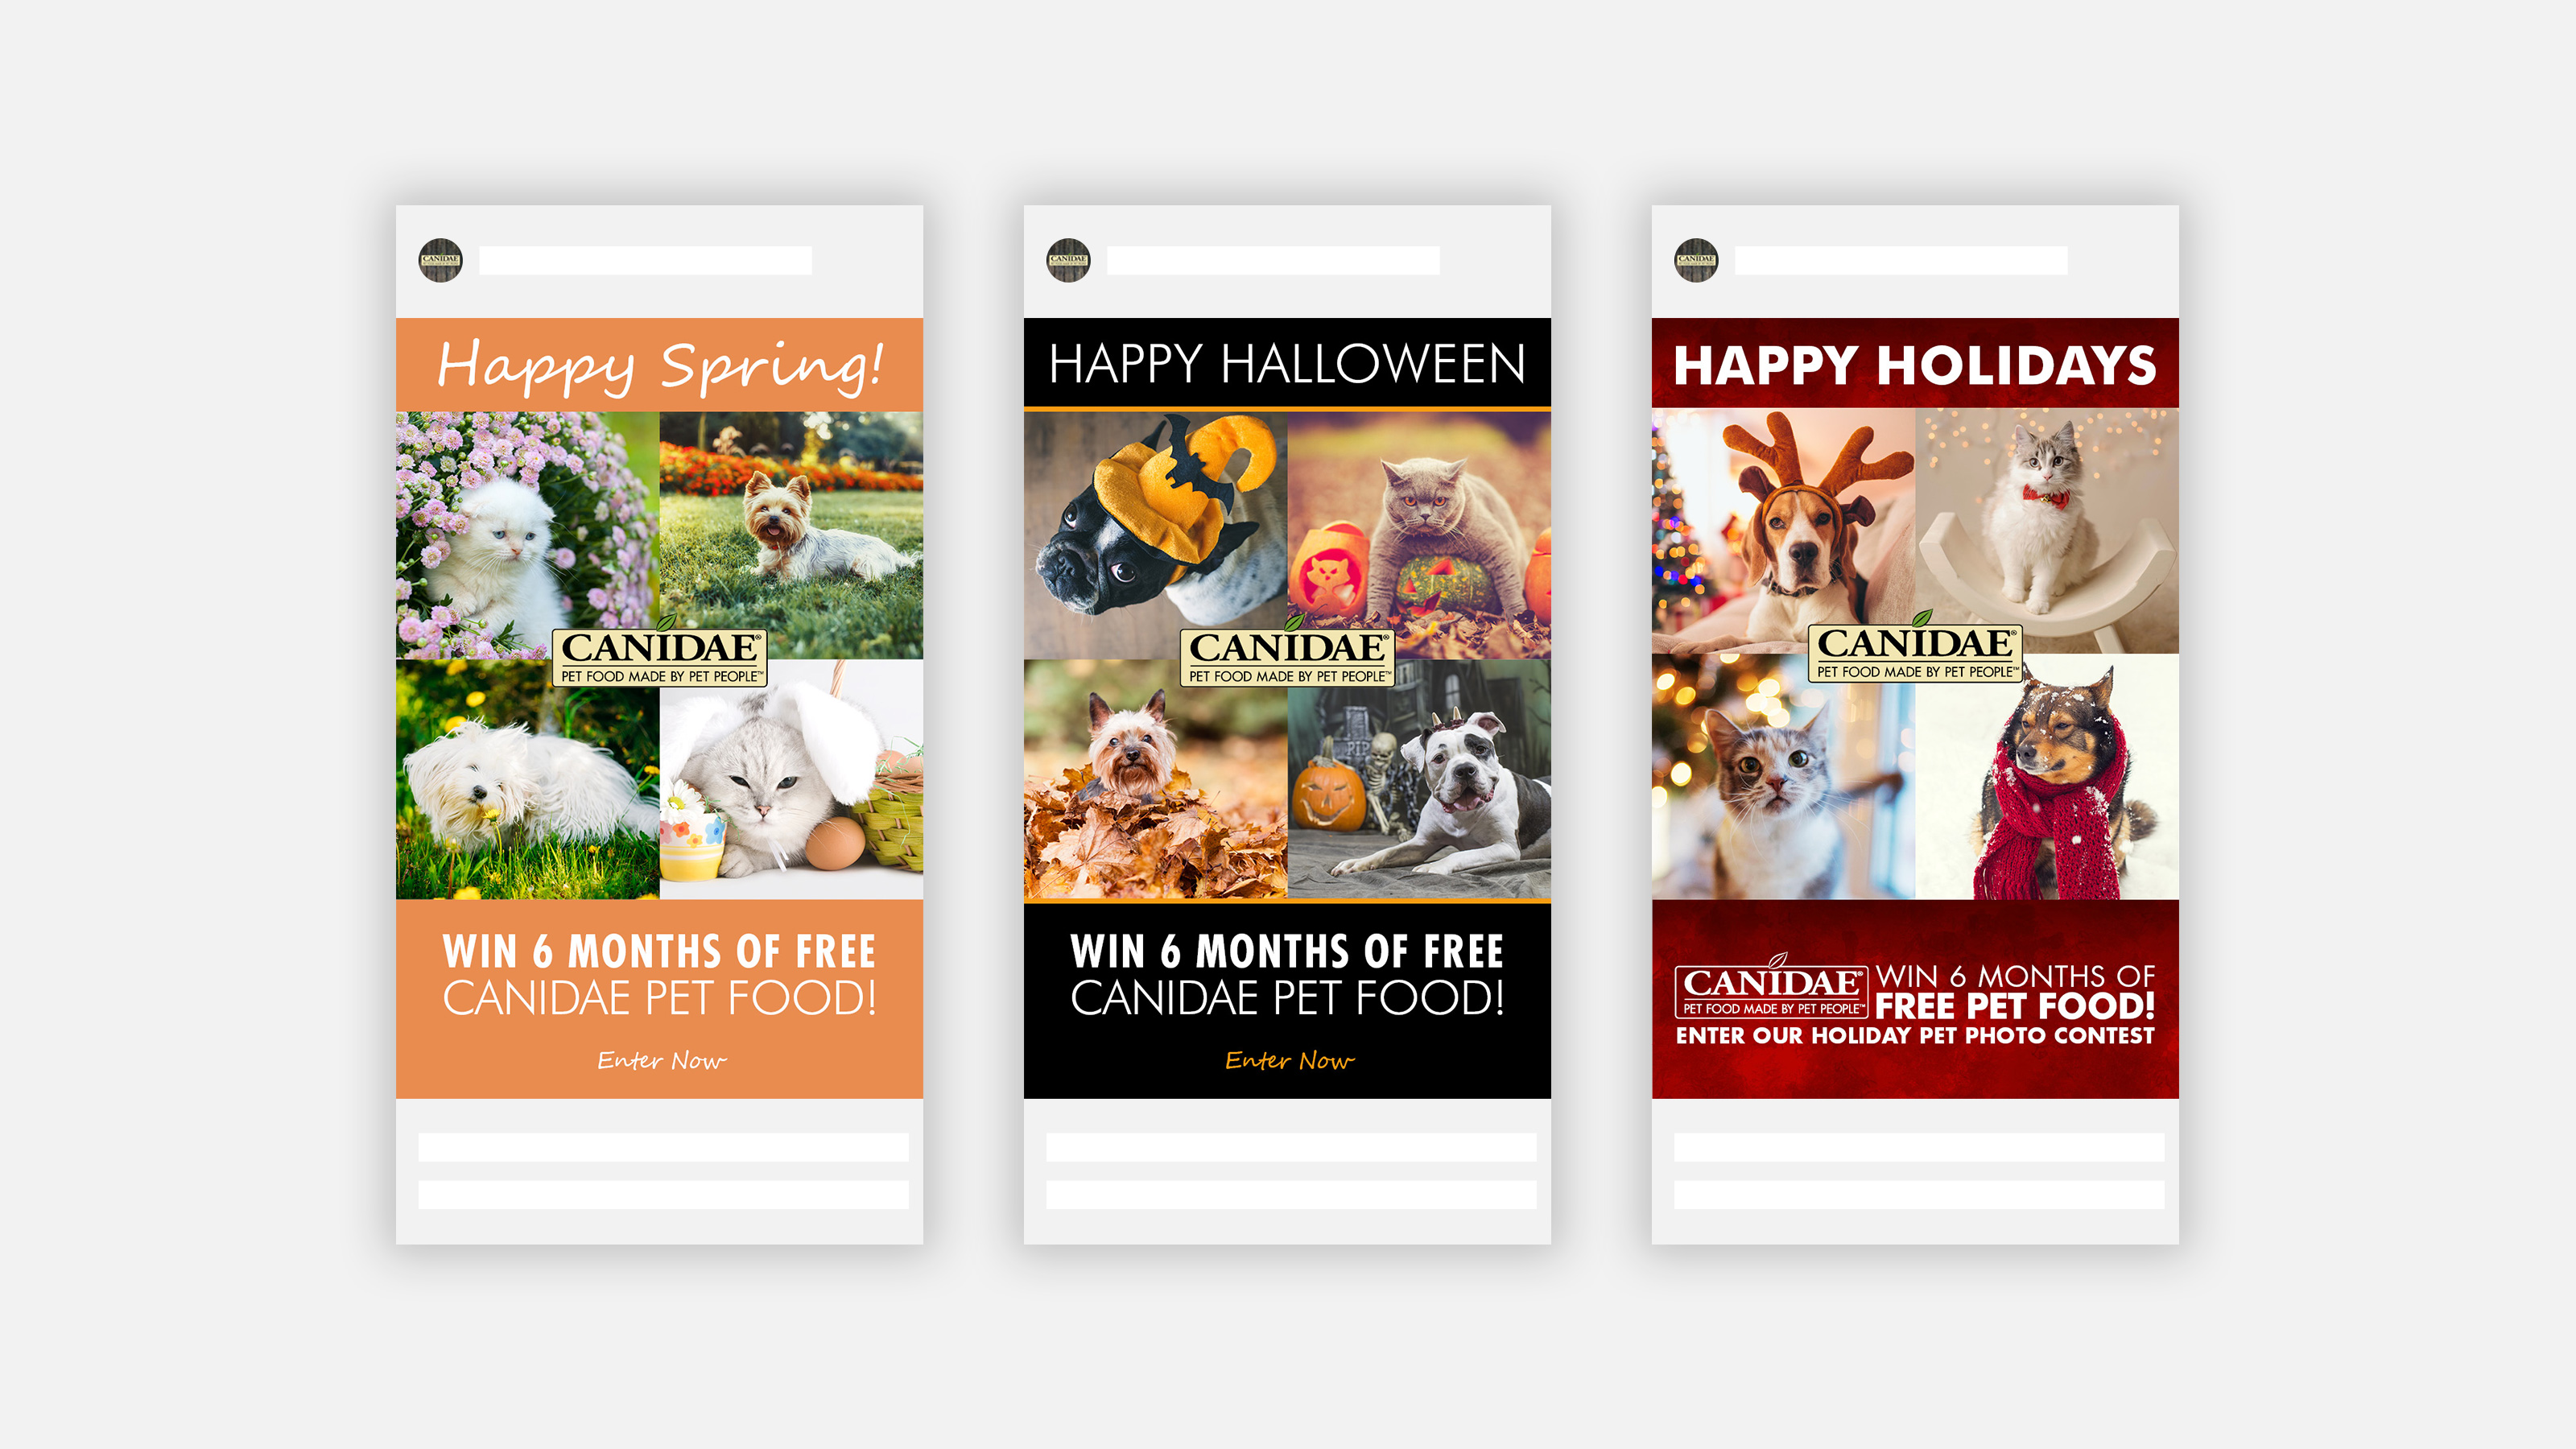 CANIDAE Pet Food Instagram contest images